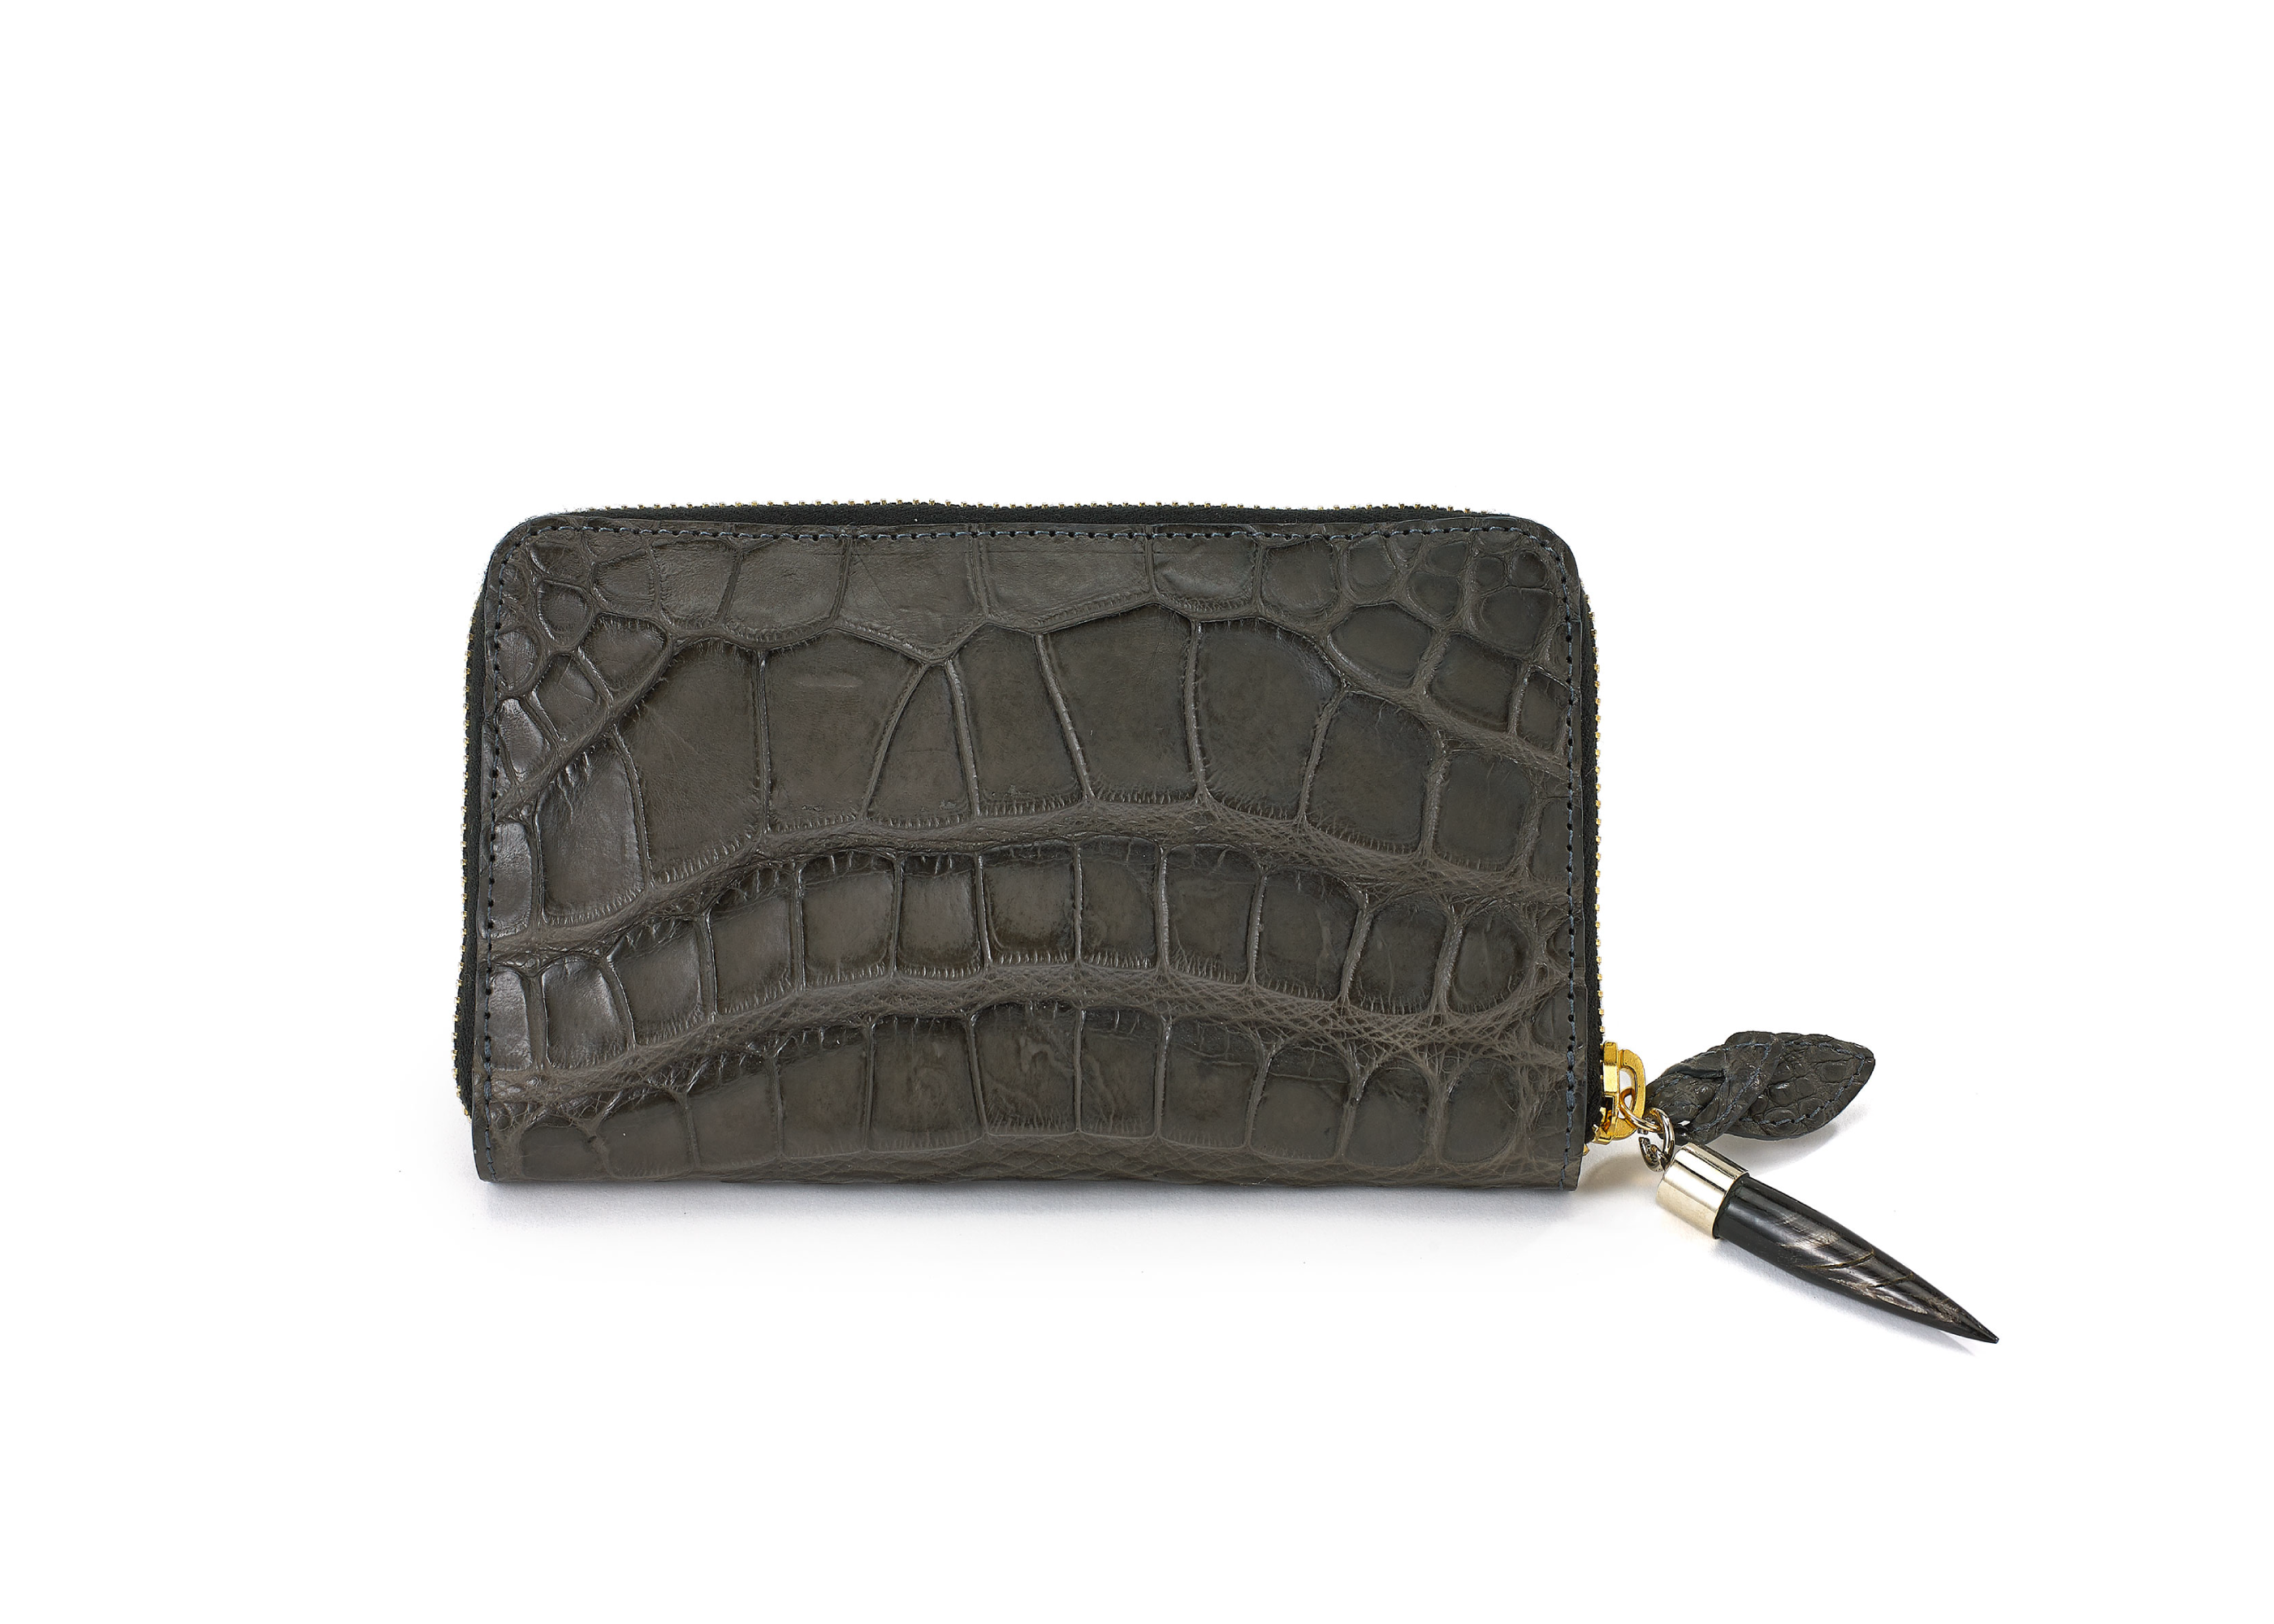 wallet-new Wallet-Alligator-